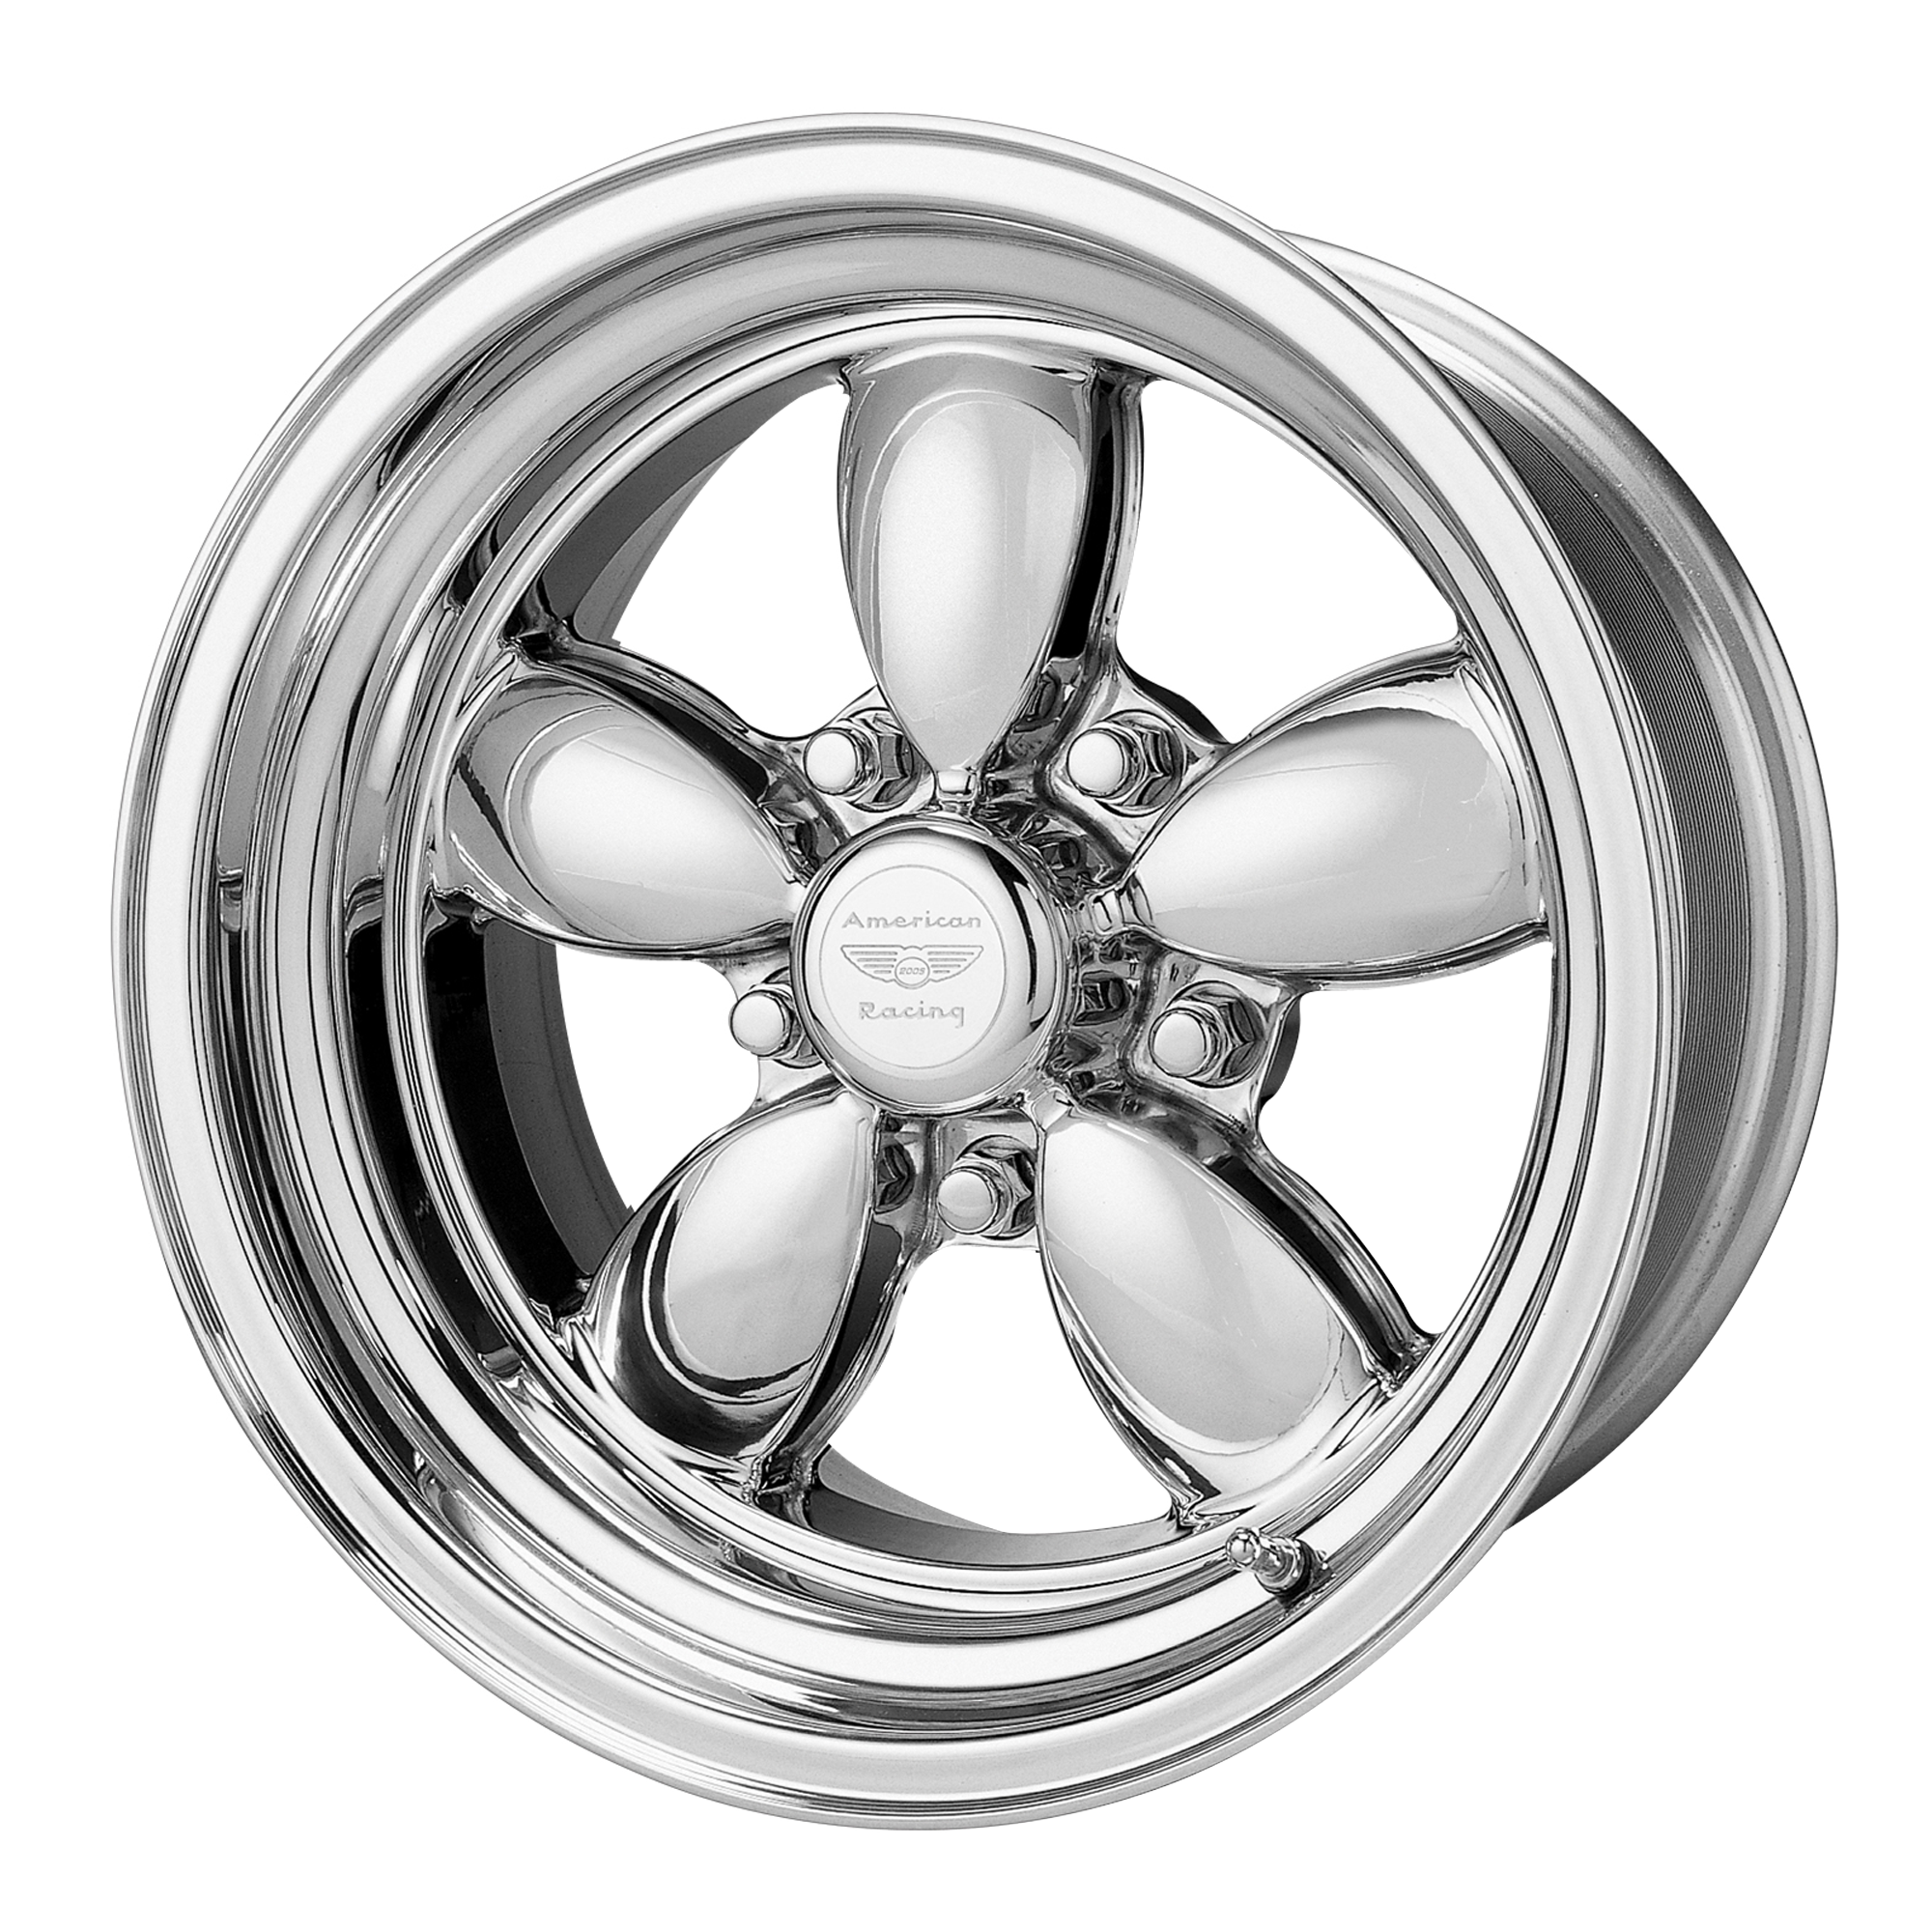 American Racing Classic 200s Two Piece Polished 15x8 5x114 30 0mm